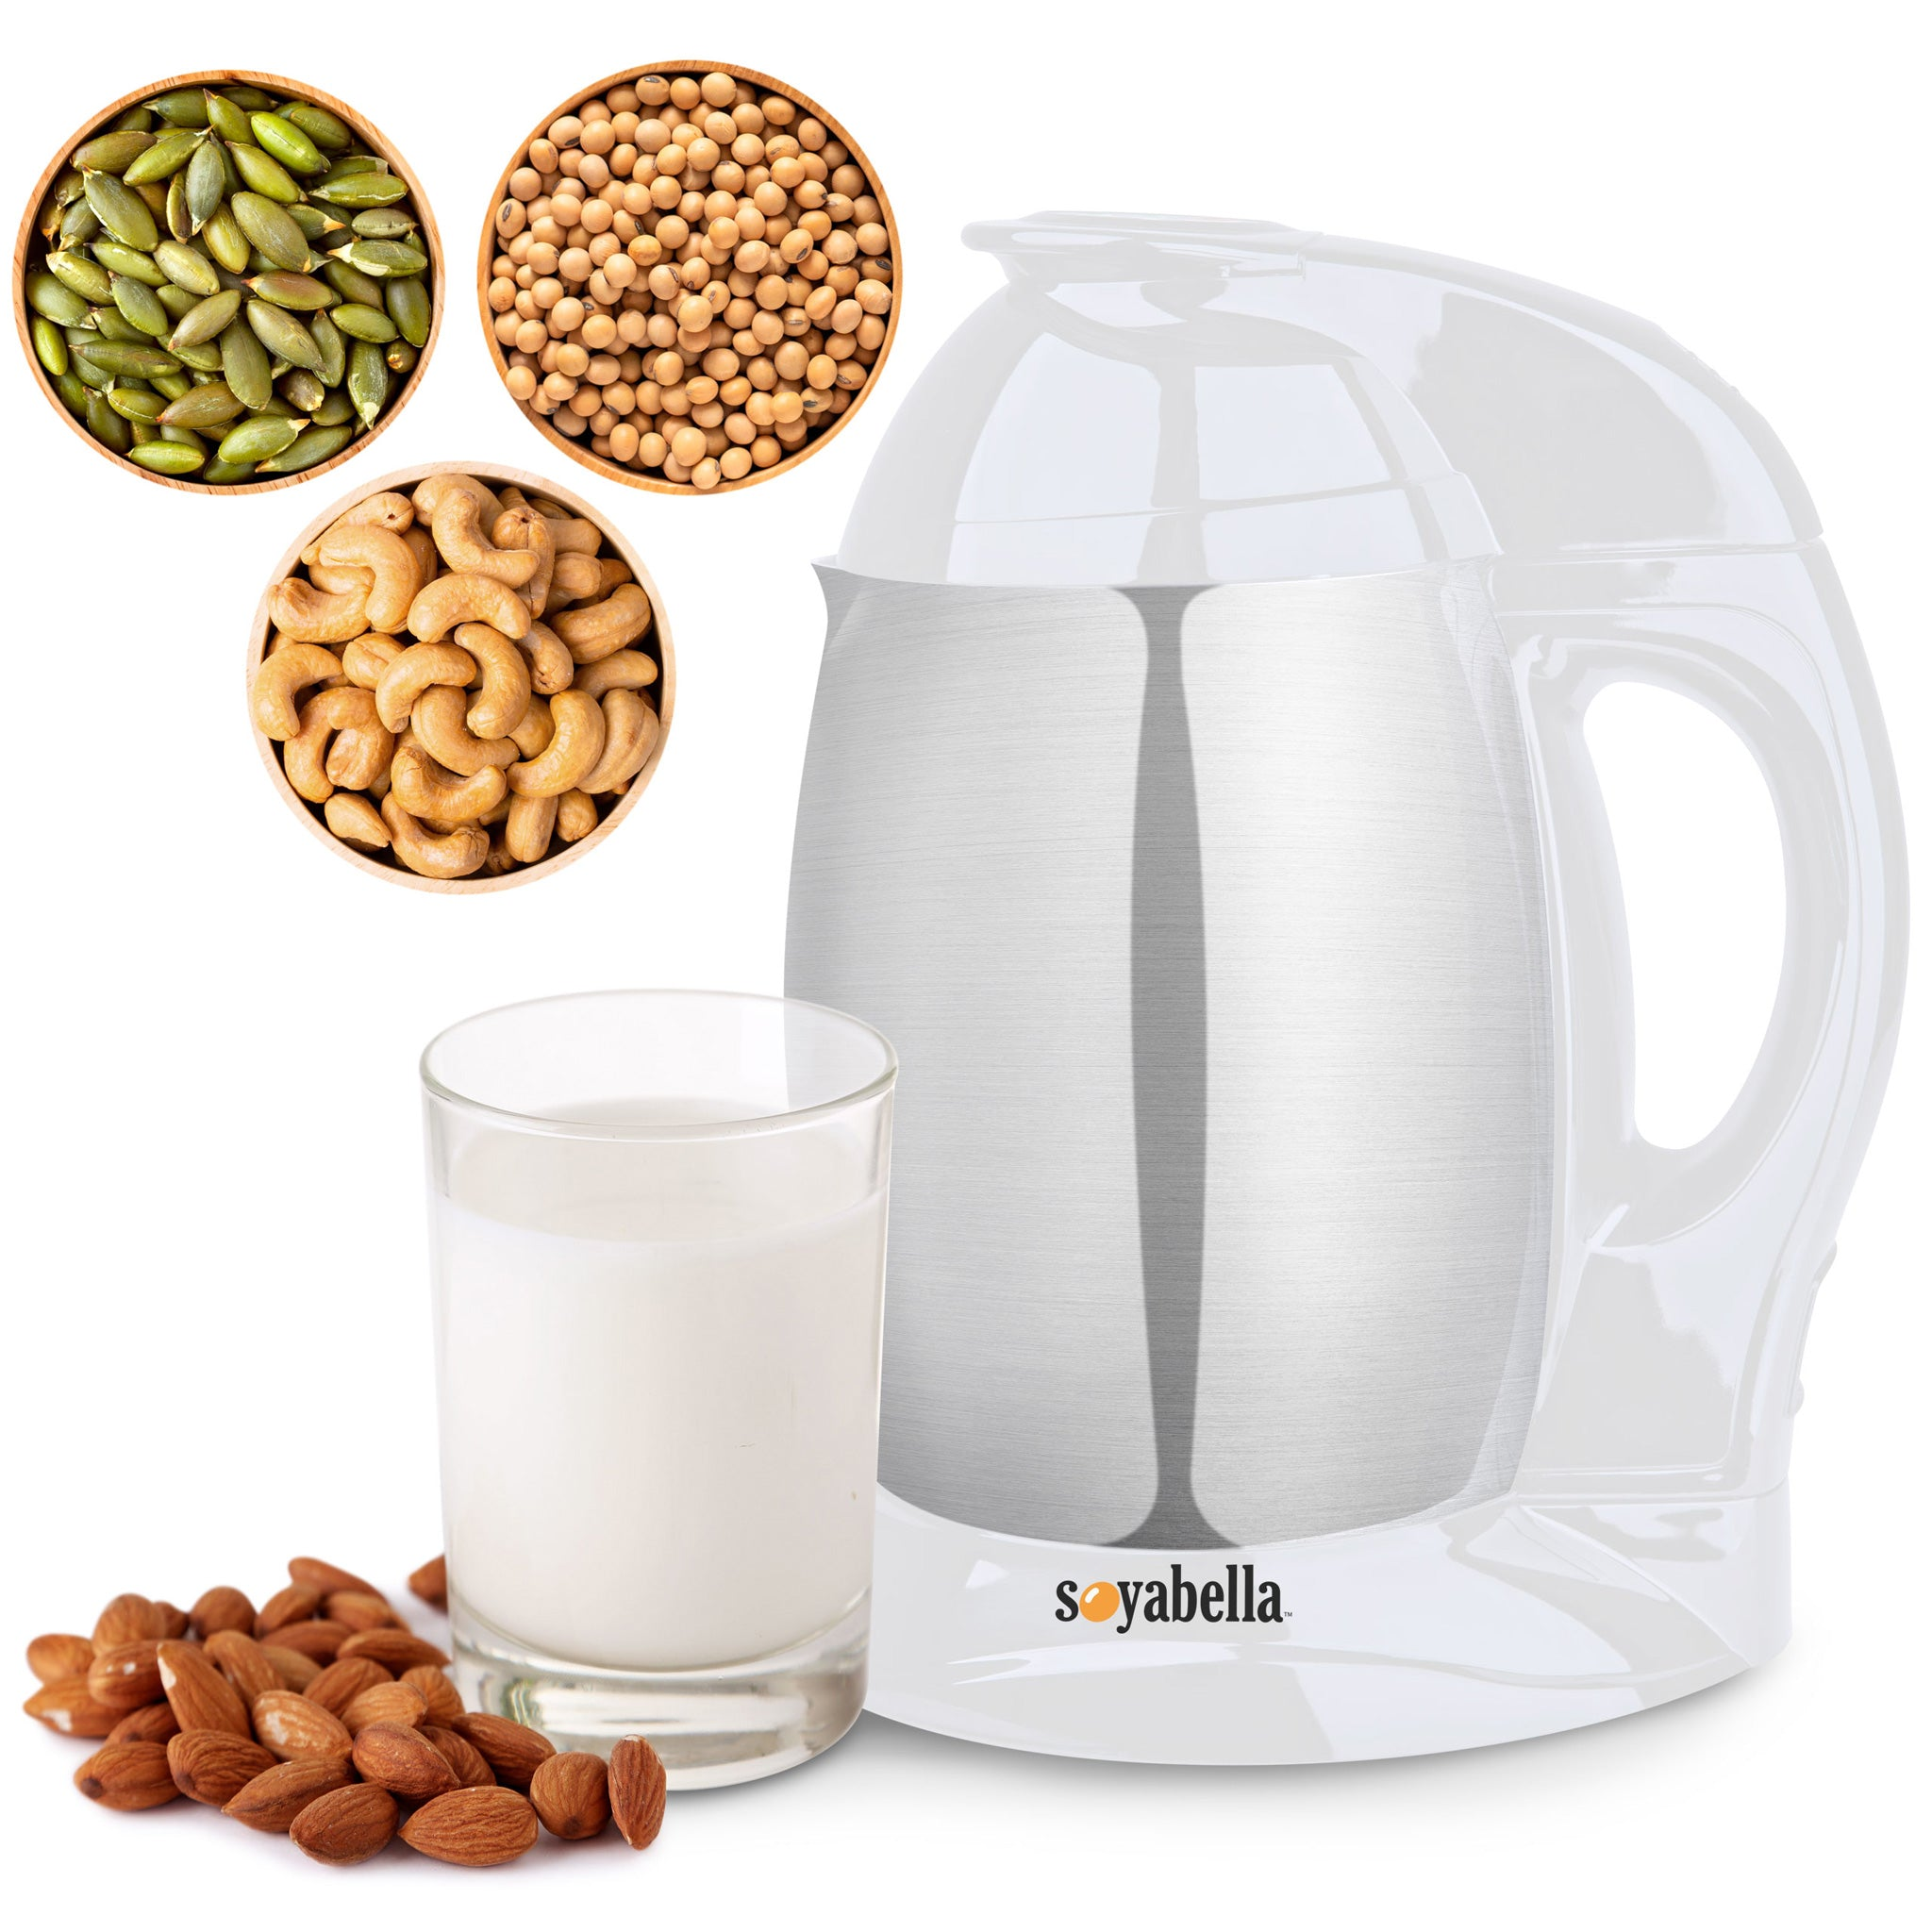 Soyabella Automatic Nut & Seed Milk Maker in White SB-130W-B - Tribest